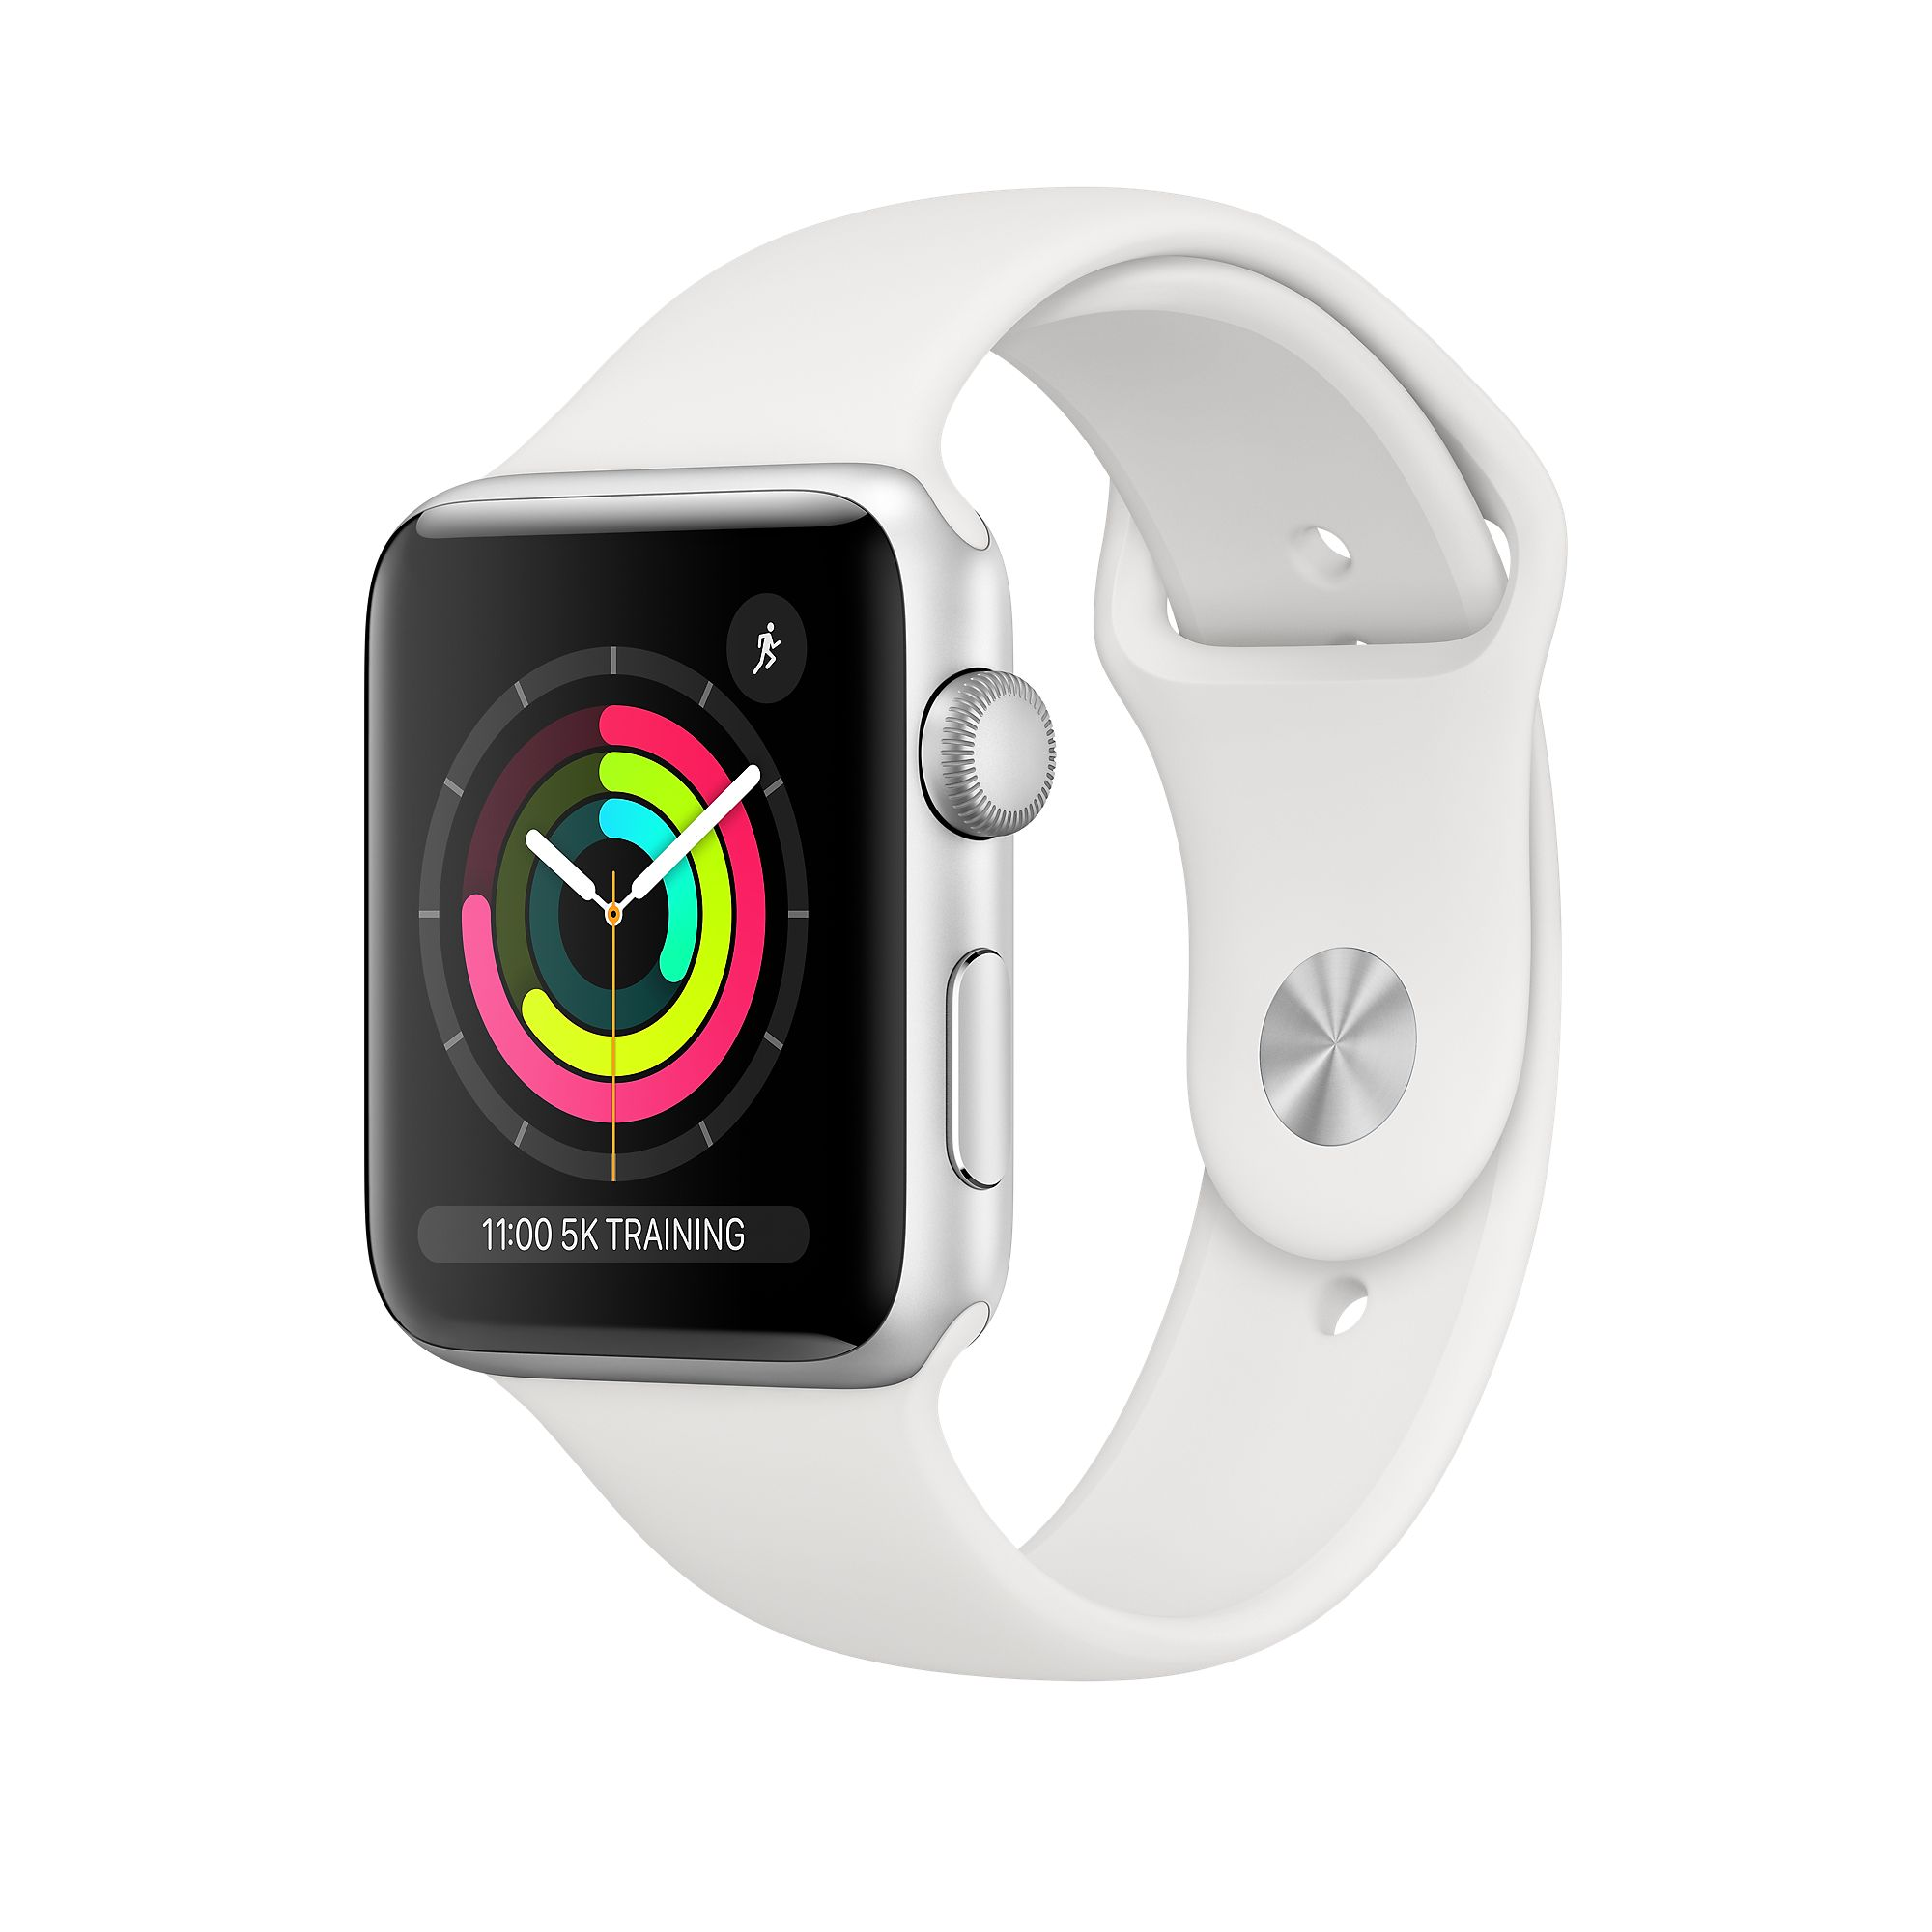 Apple Watch Coupon Code $60 Walmart Black Friday 2020